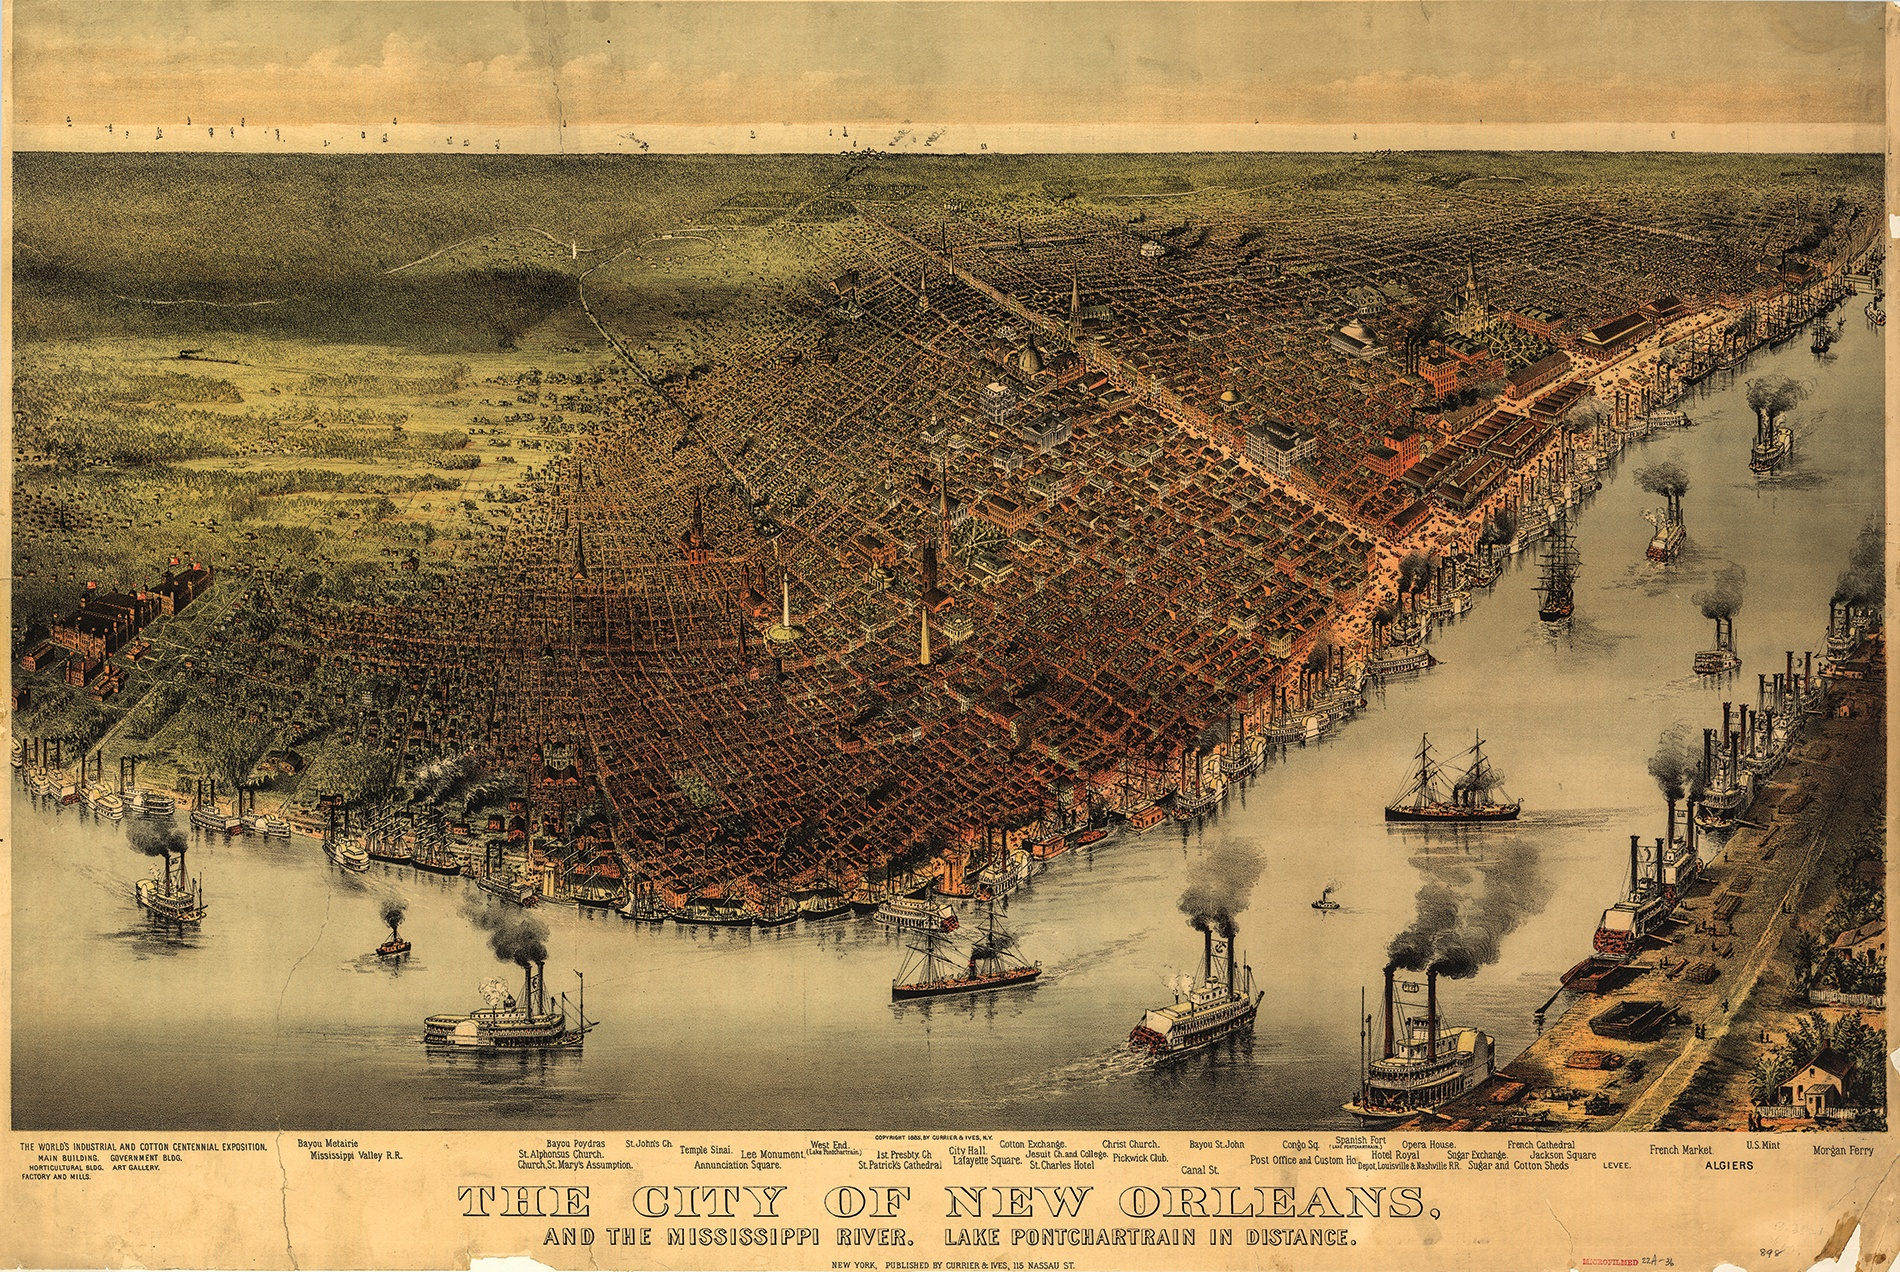 1885 map of New Orleans